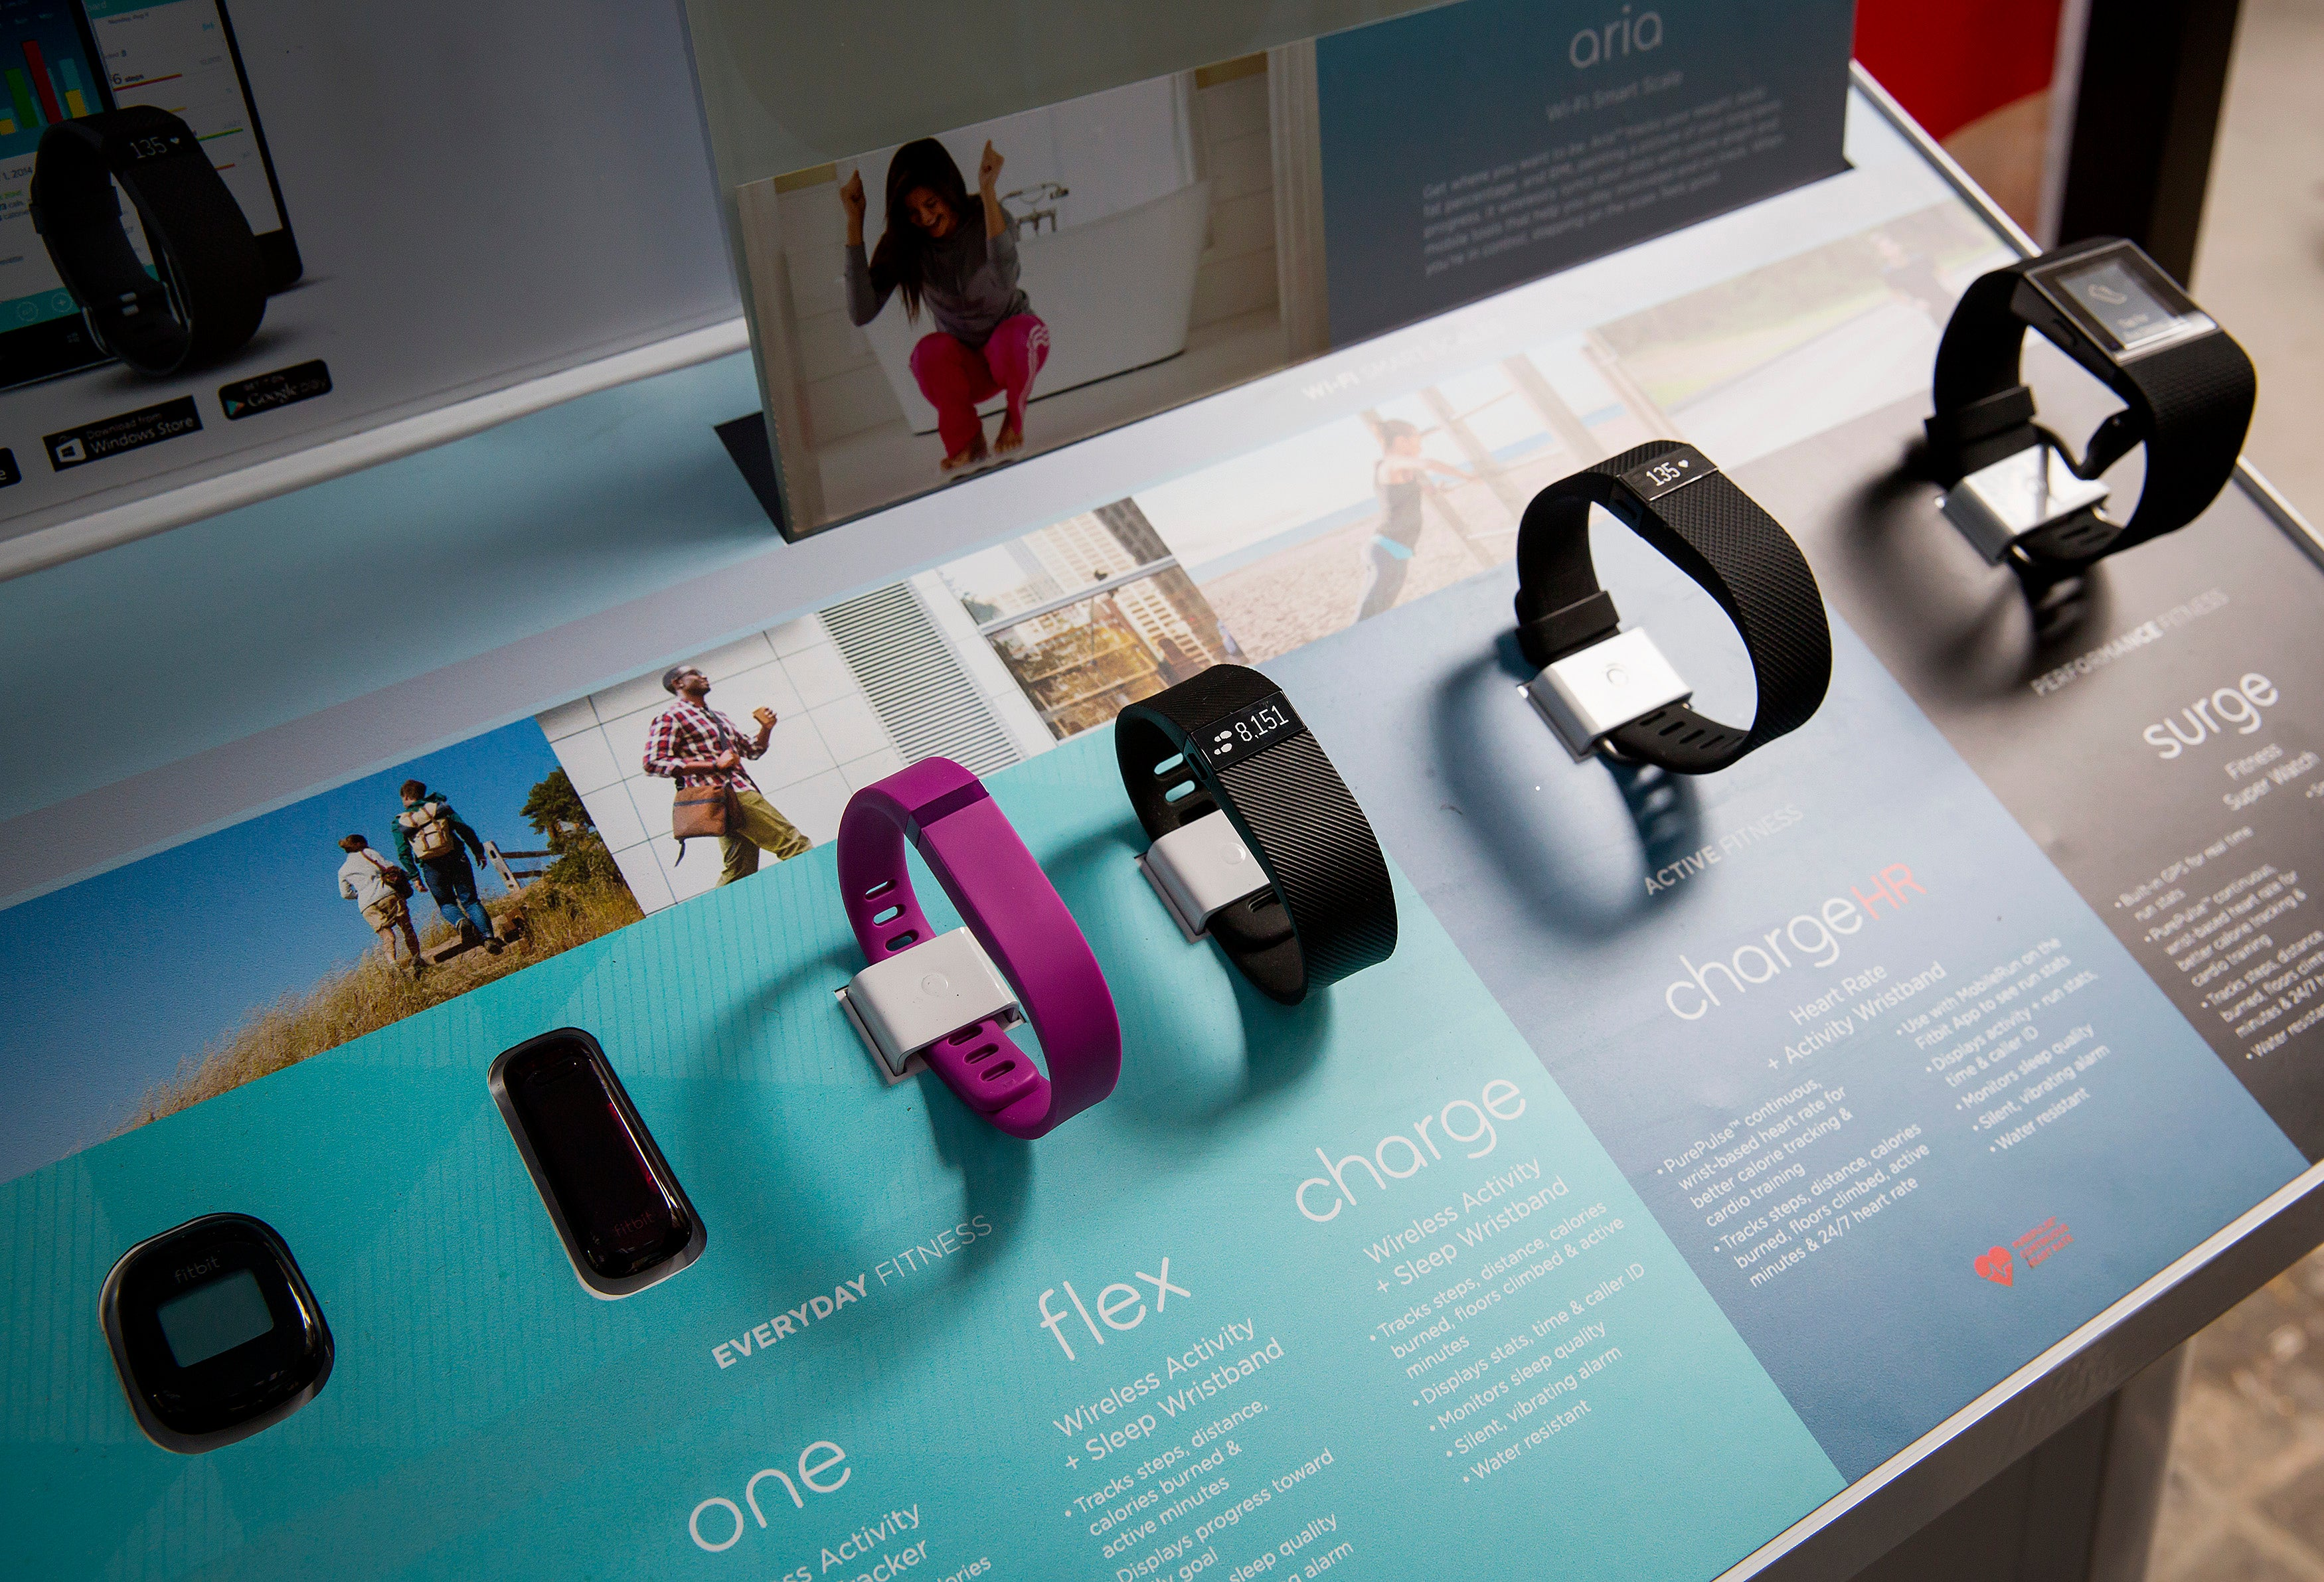 Fitbit devices measure inaccurate heart rates compared to ECG readings